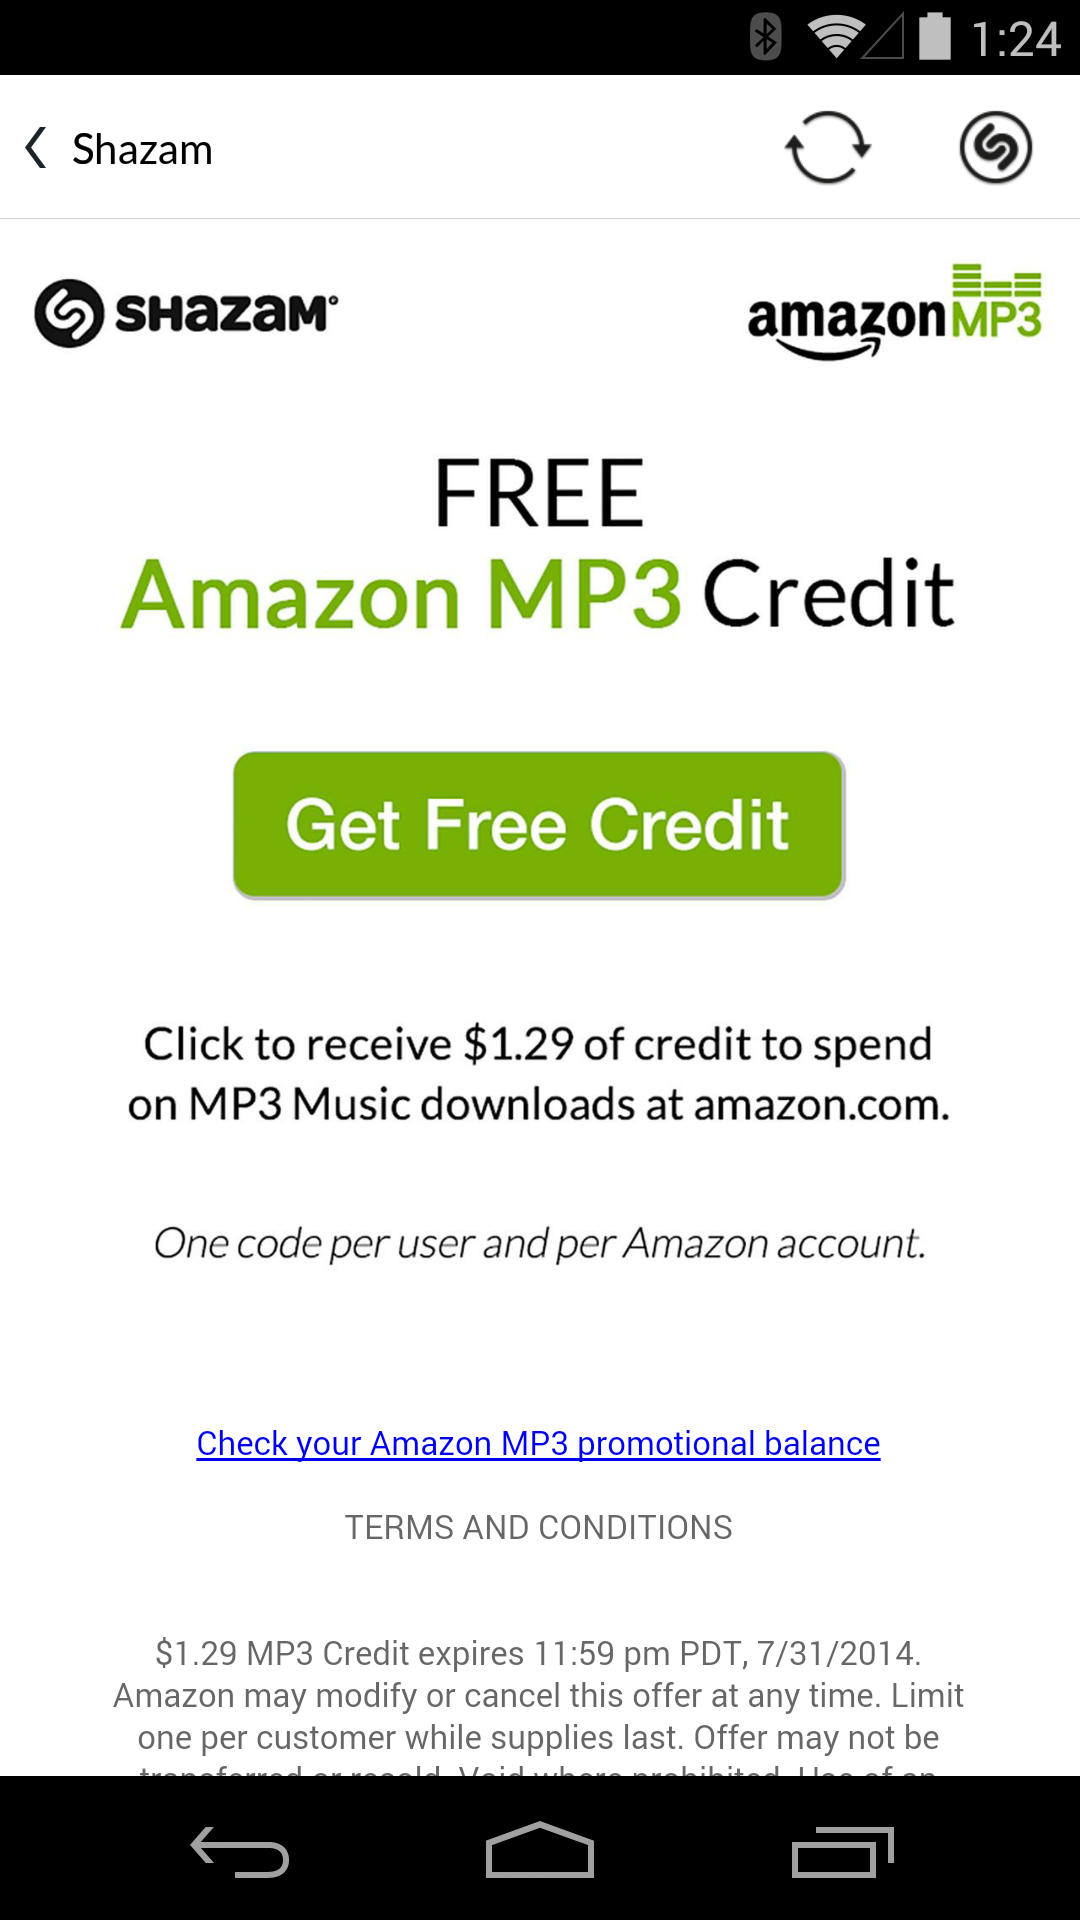 Deal Alert] Shazam A Song And Get $1 29 In Amazon MP3 Credit, Good